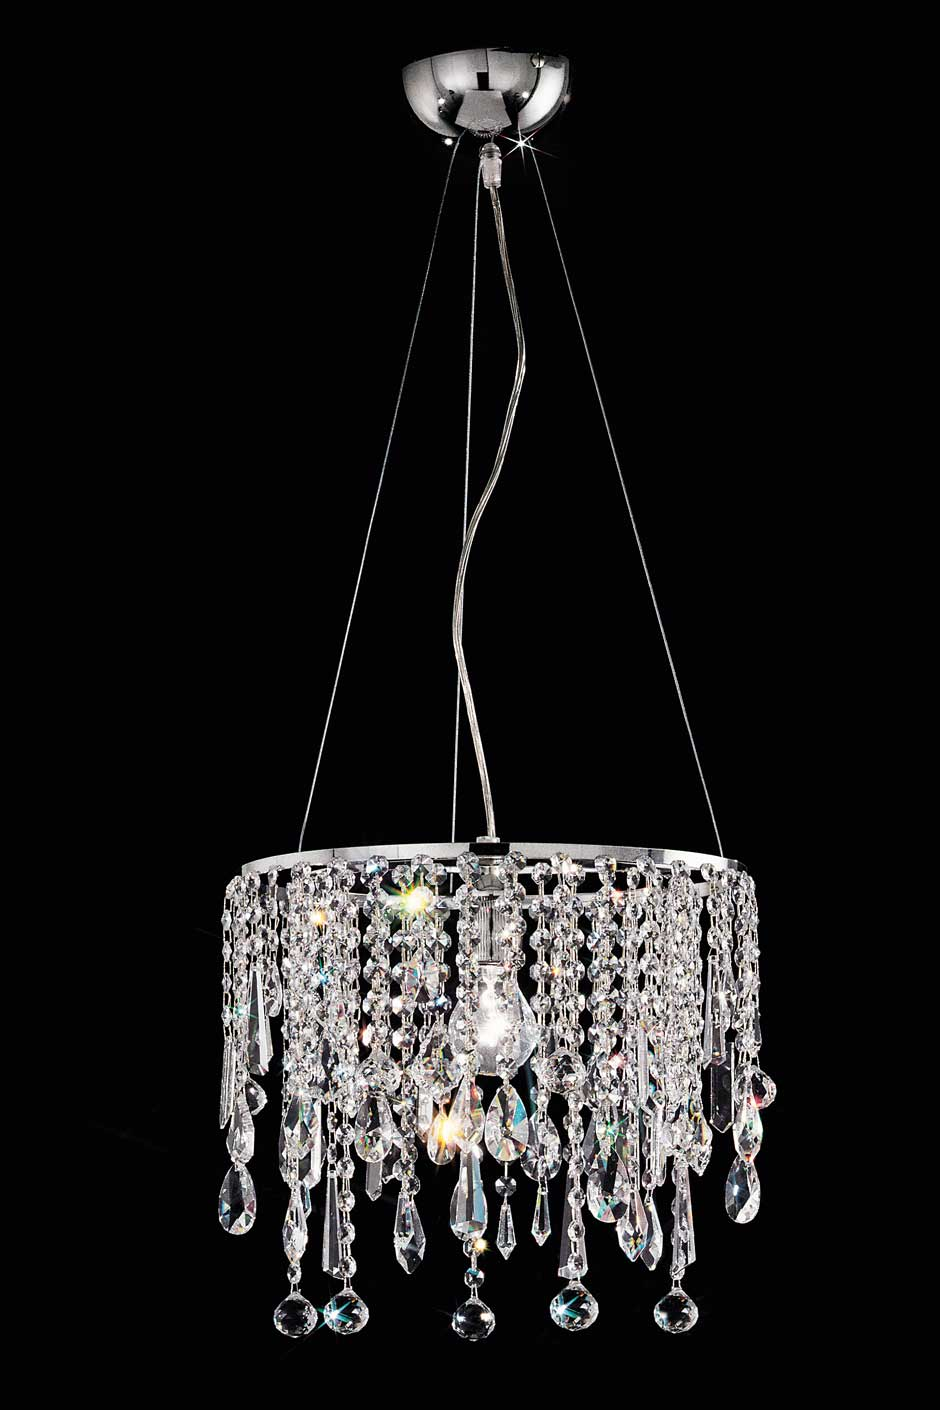 Small Cylindrical Crystal Ceiling Light